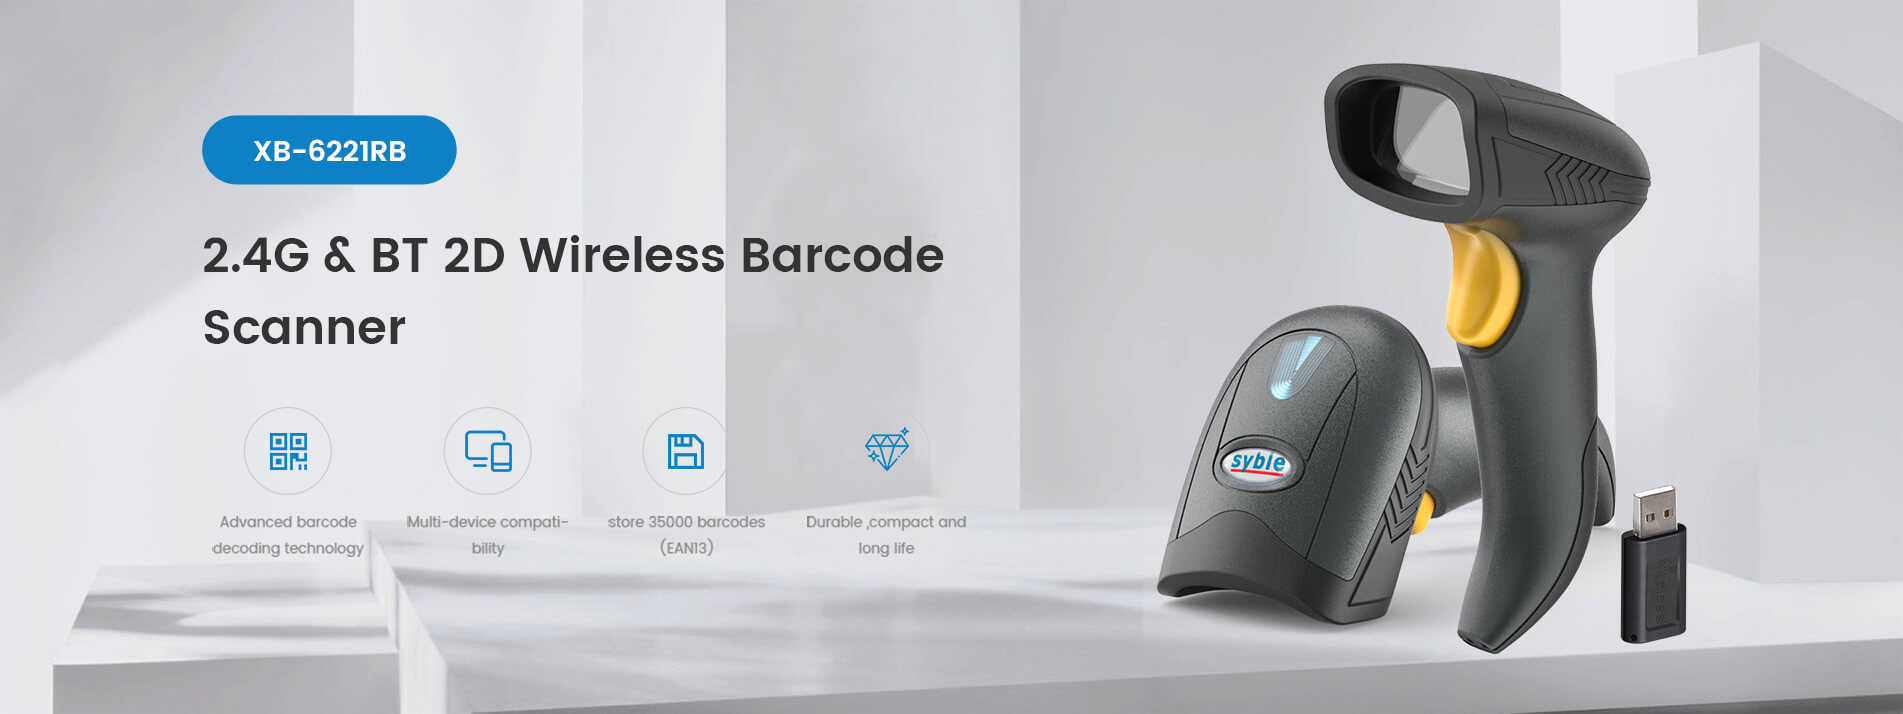 2.4G and BT 2D Wireless Barcode Scanner